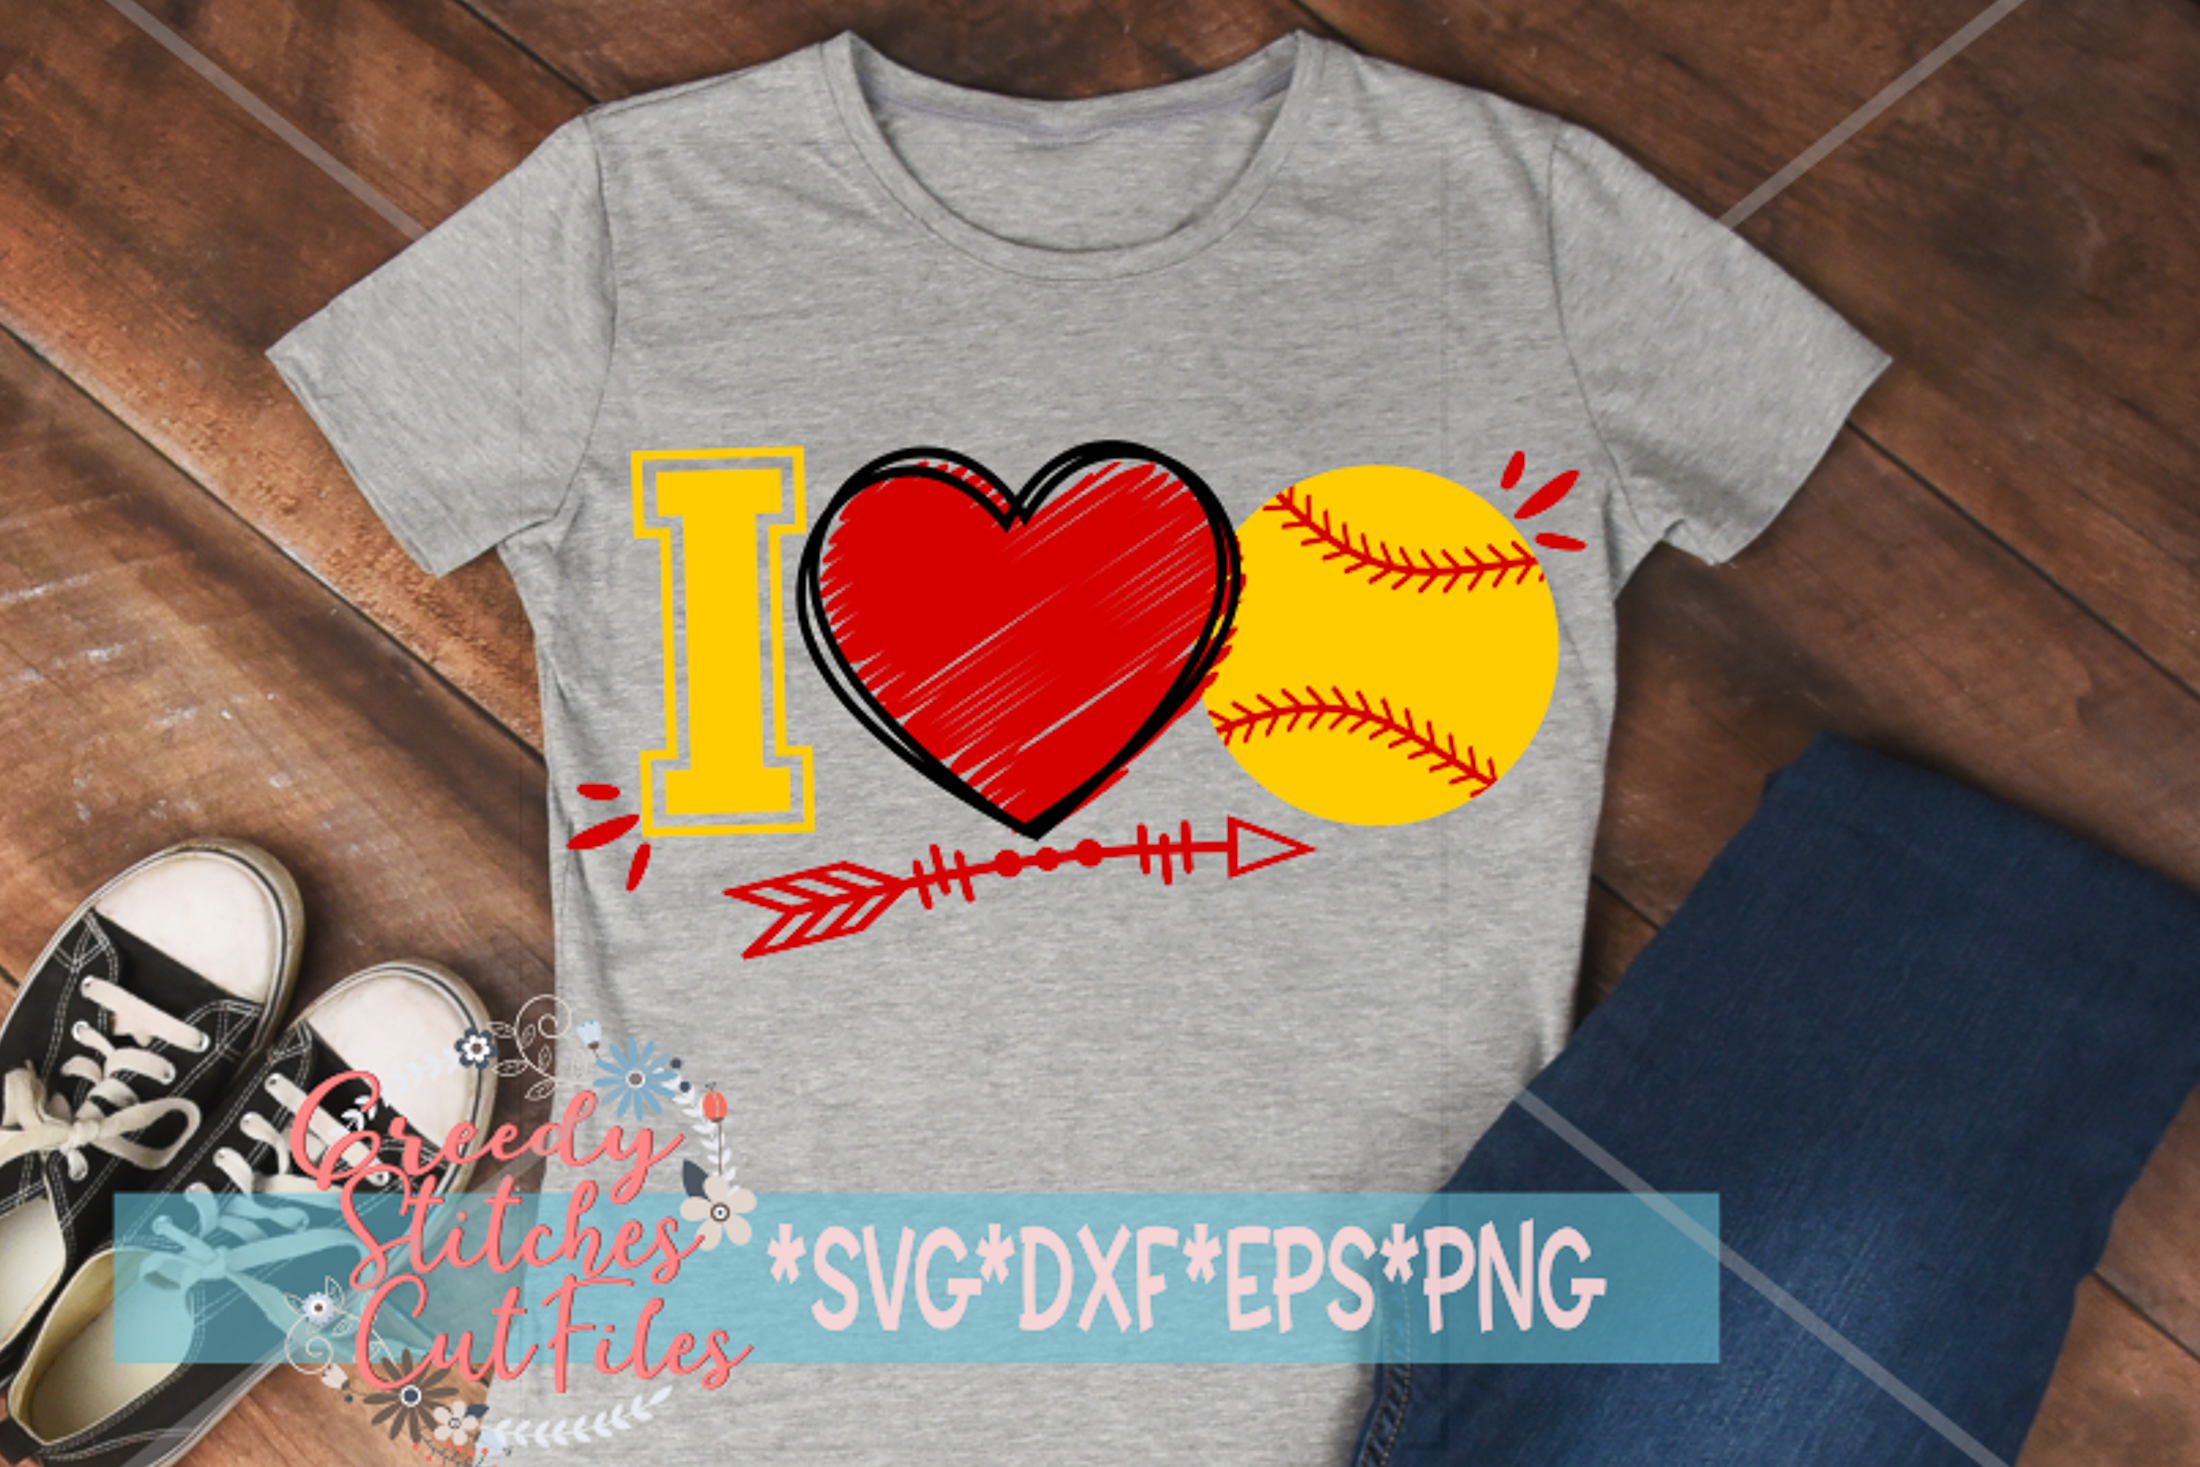 I Love Softball SVG, DXF, EPS, PNG Files example image 5